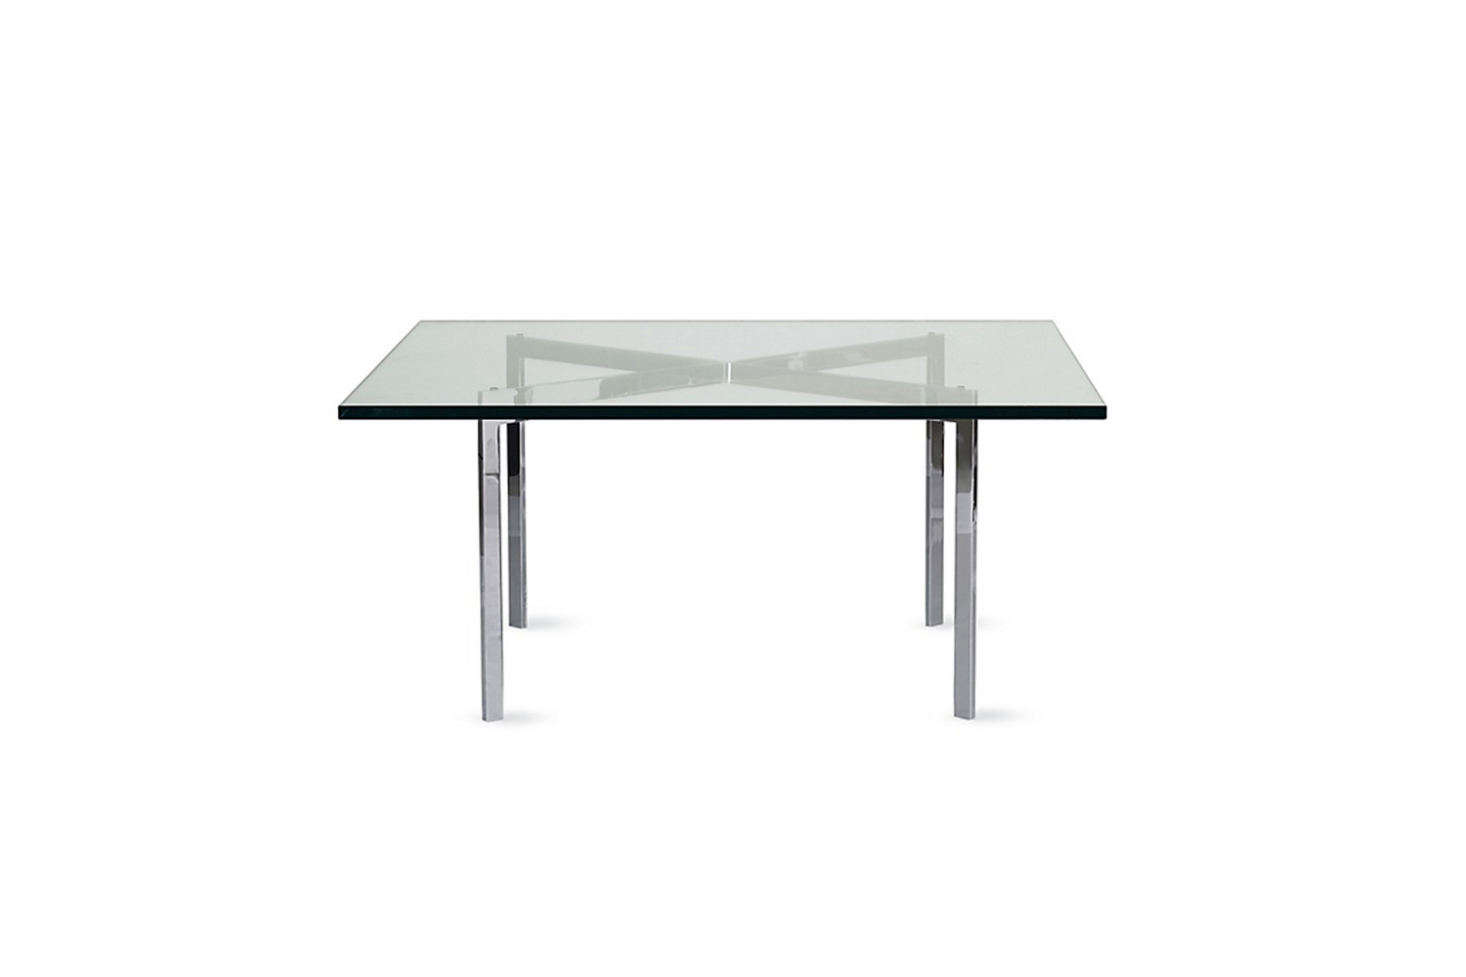 Designed by Mies van der Rohe and produced by Knoll, the Barcelona Table was first created for his Villa Tugendhat in Brno, Czech Republic. The table is still produced today for $